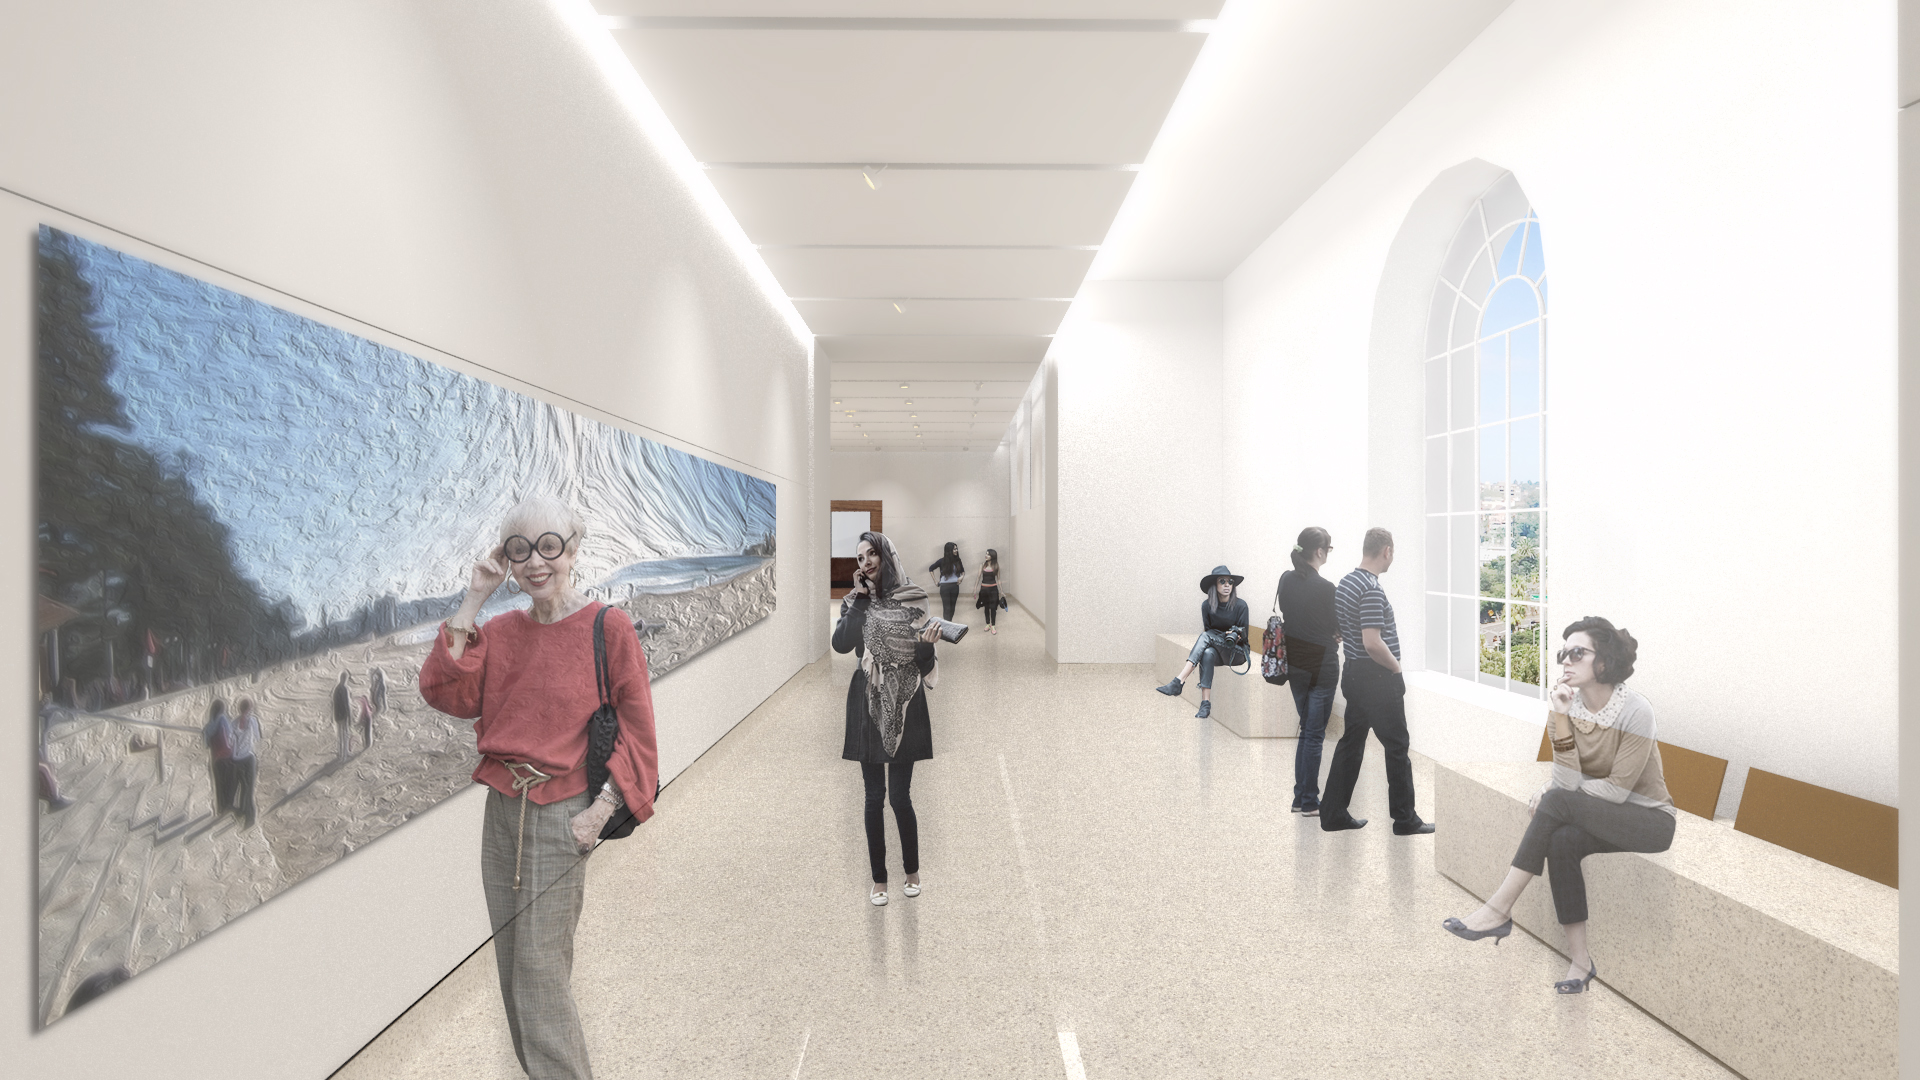 Artist's impression of new Level 1 galleries. Source: Hassell